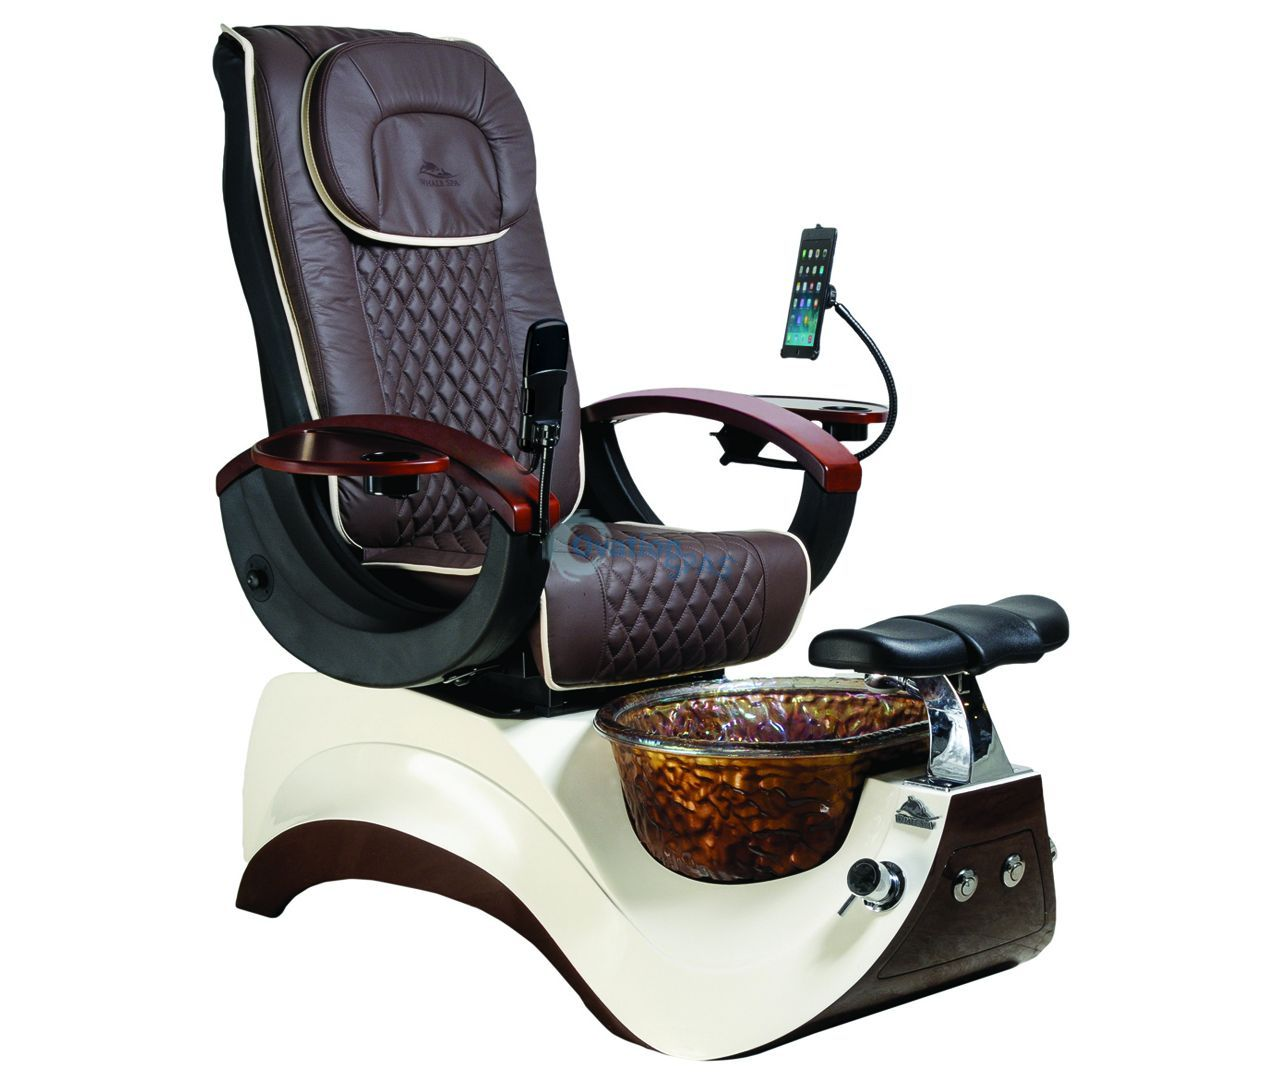 Pedicure Chair Alden Crystal Pedicure Chair